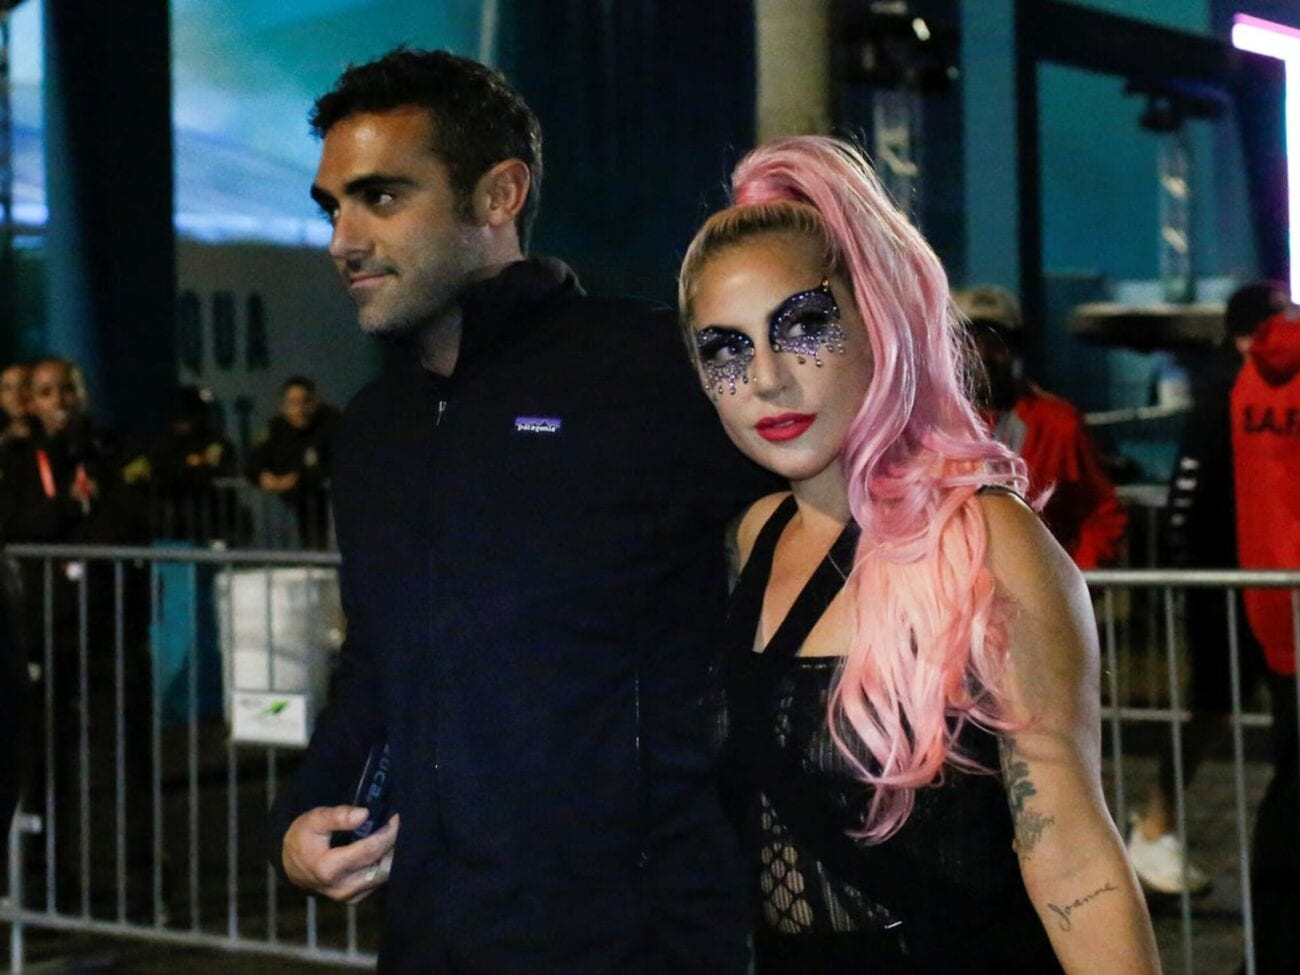 Who's dating Lady Gaga now? Is Bradley Cooper old news? Dive into the details about about the Academy Award winning singer's new boyfriend.